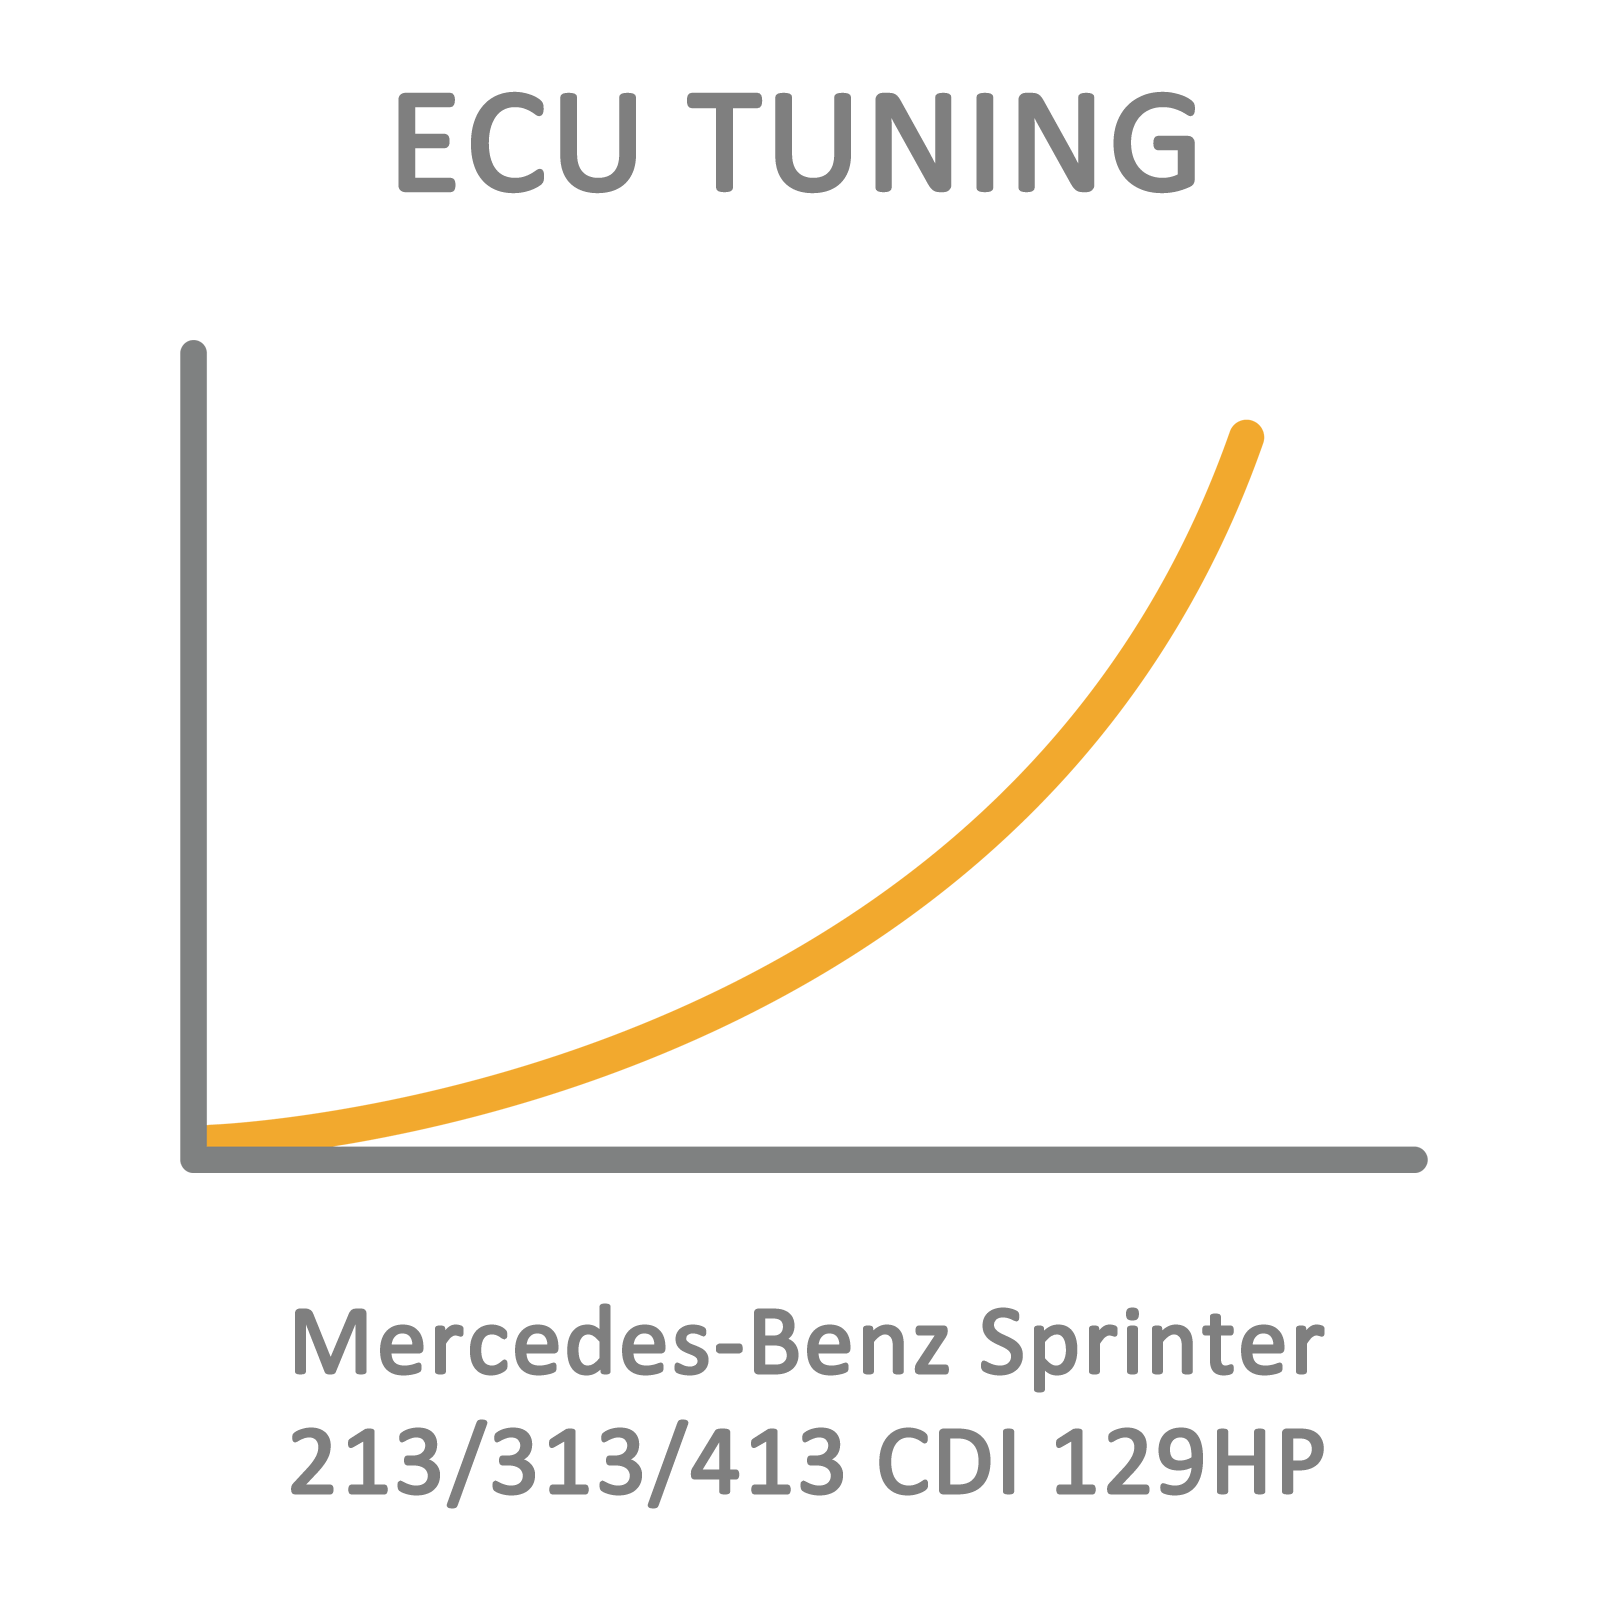 Mercedes-Benz Sprinter 213/313/413 CDI 129HP ECU Tuning